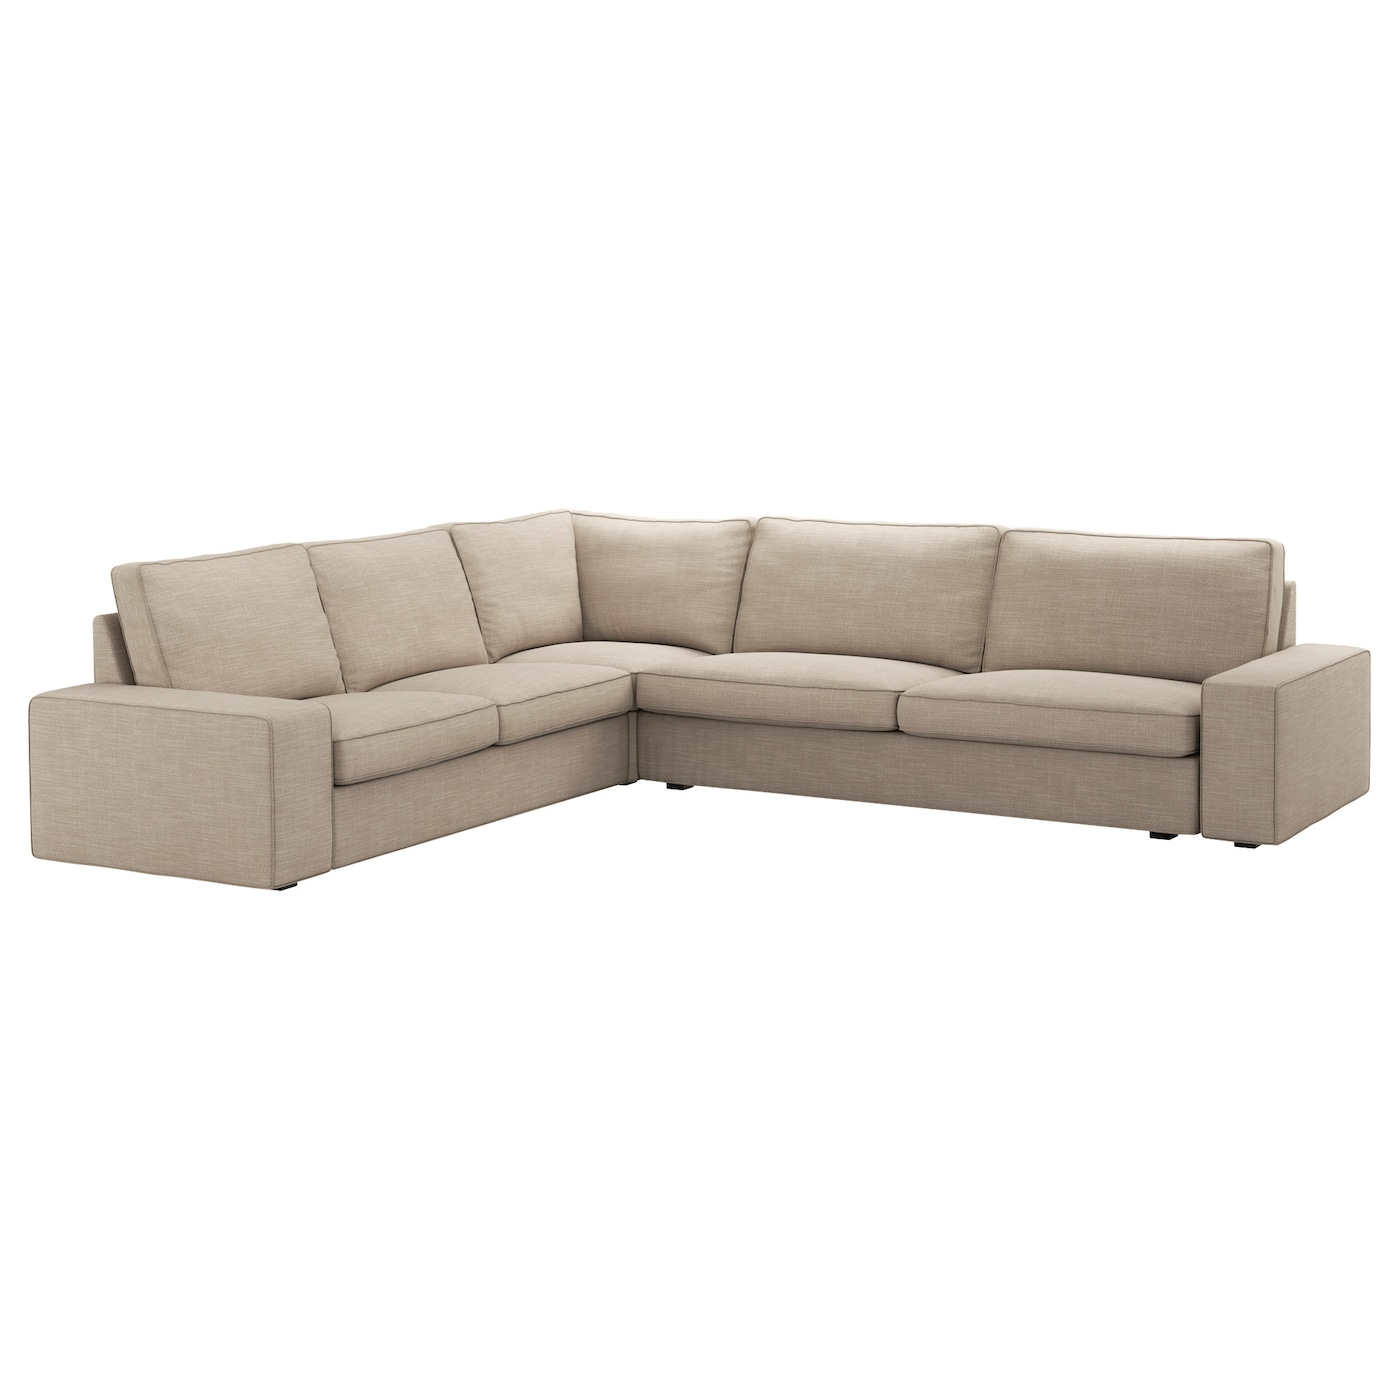 kivik corner sofa 2 3 3 2 hillared beige ikea. Black Bedroom Furniture Sets. Home Design Ideas